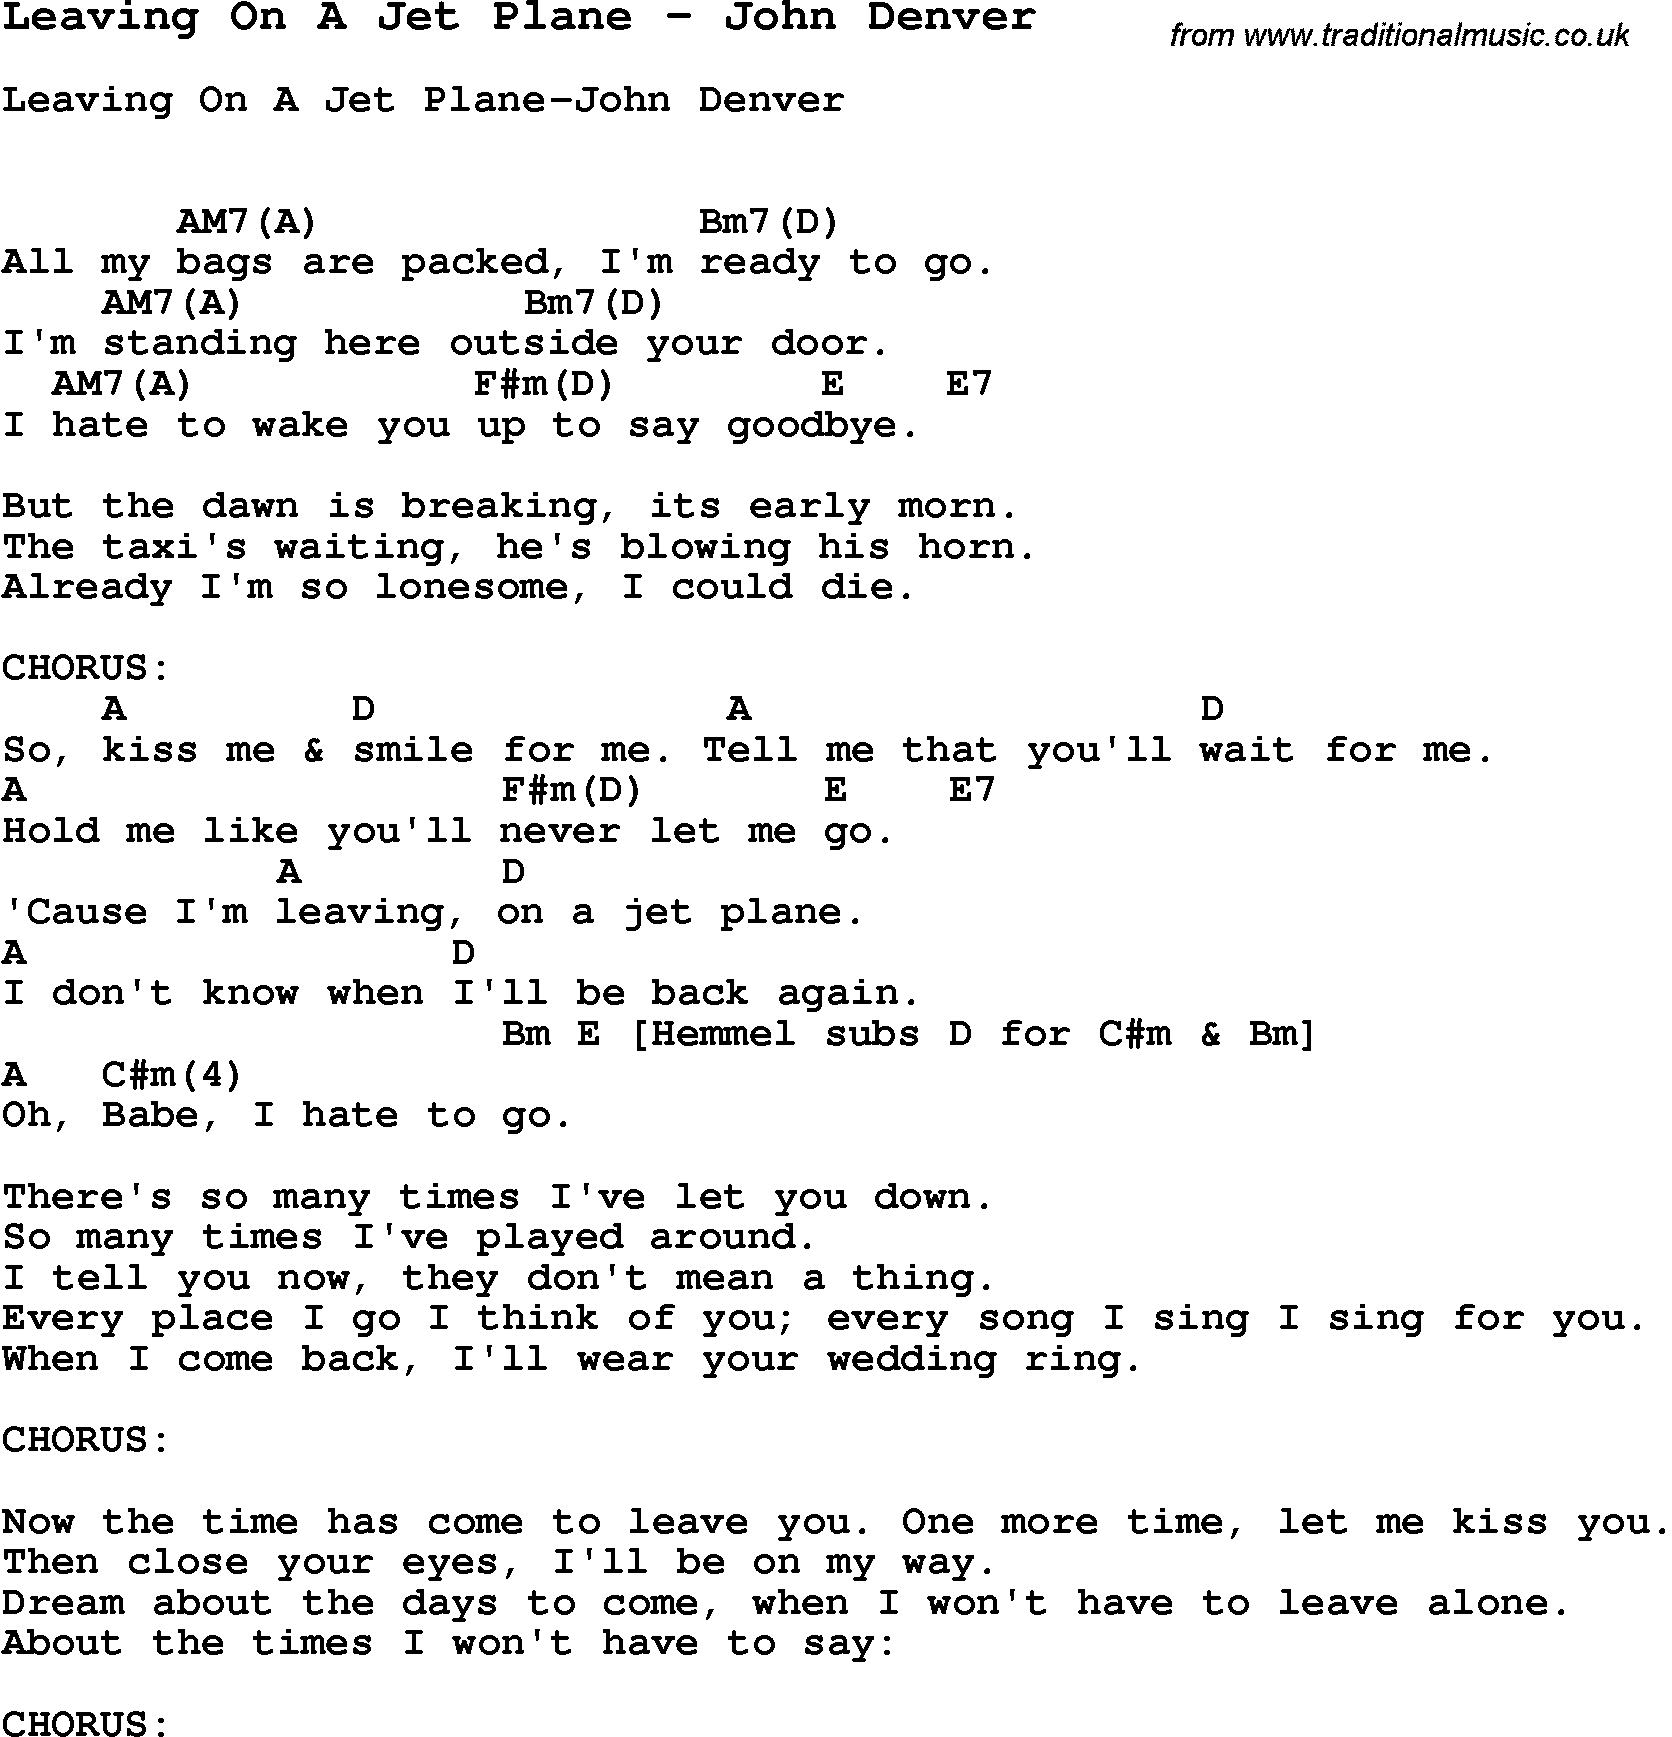 Song Leaving On A Jet Plane By John Denver Song Lyric For Vocal